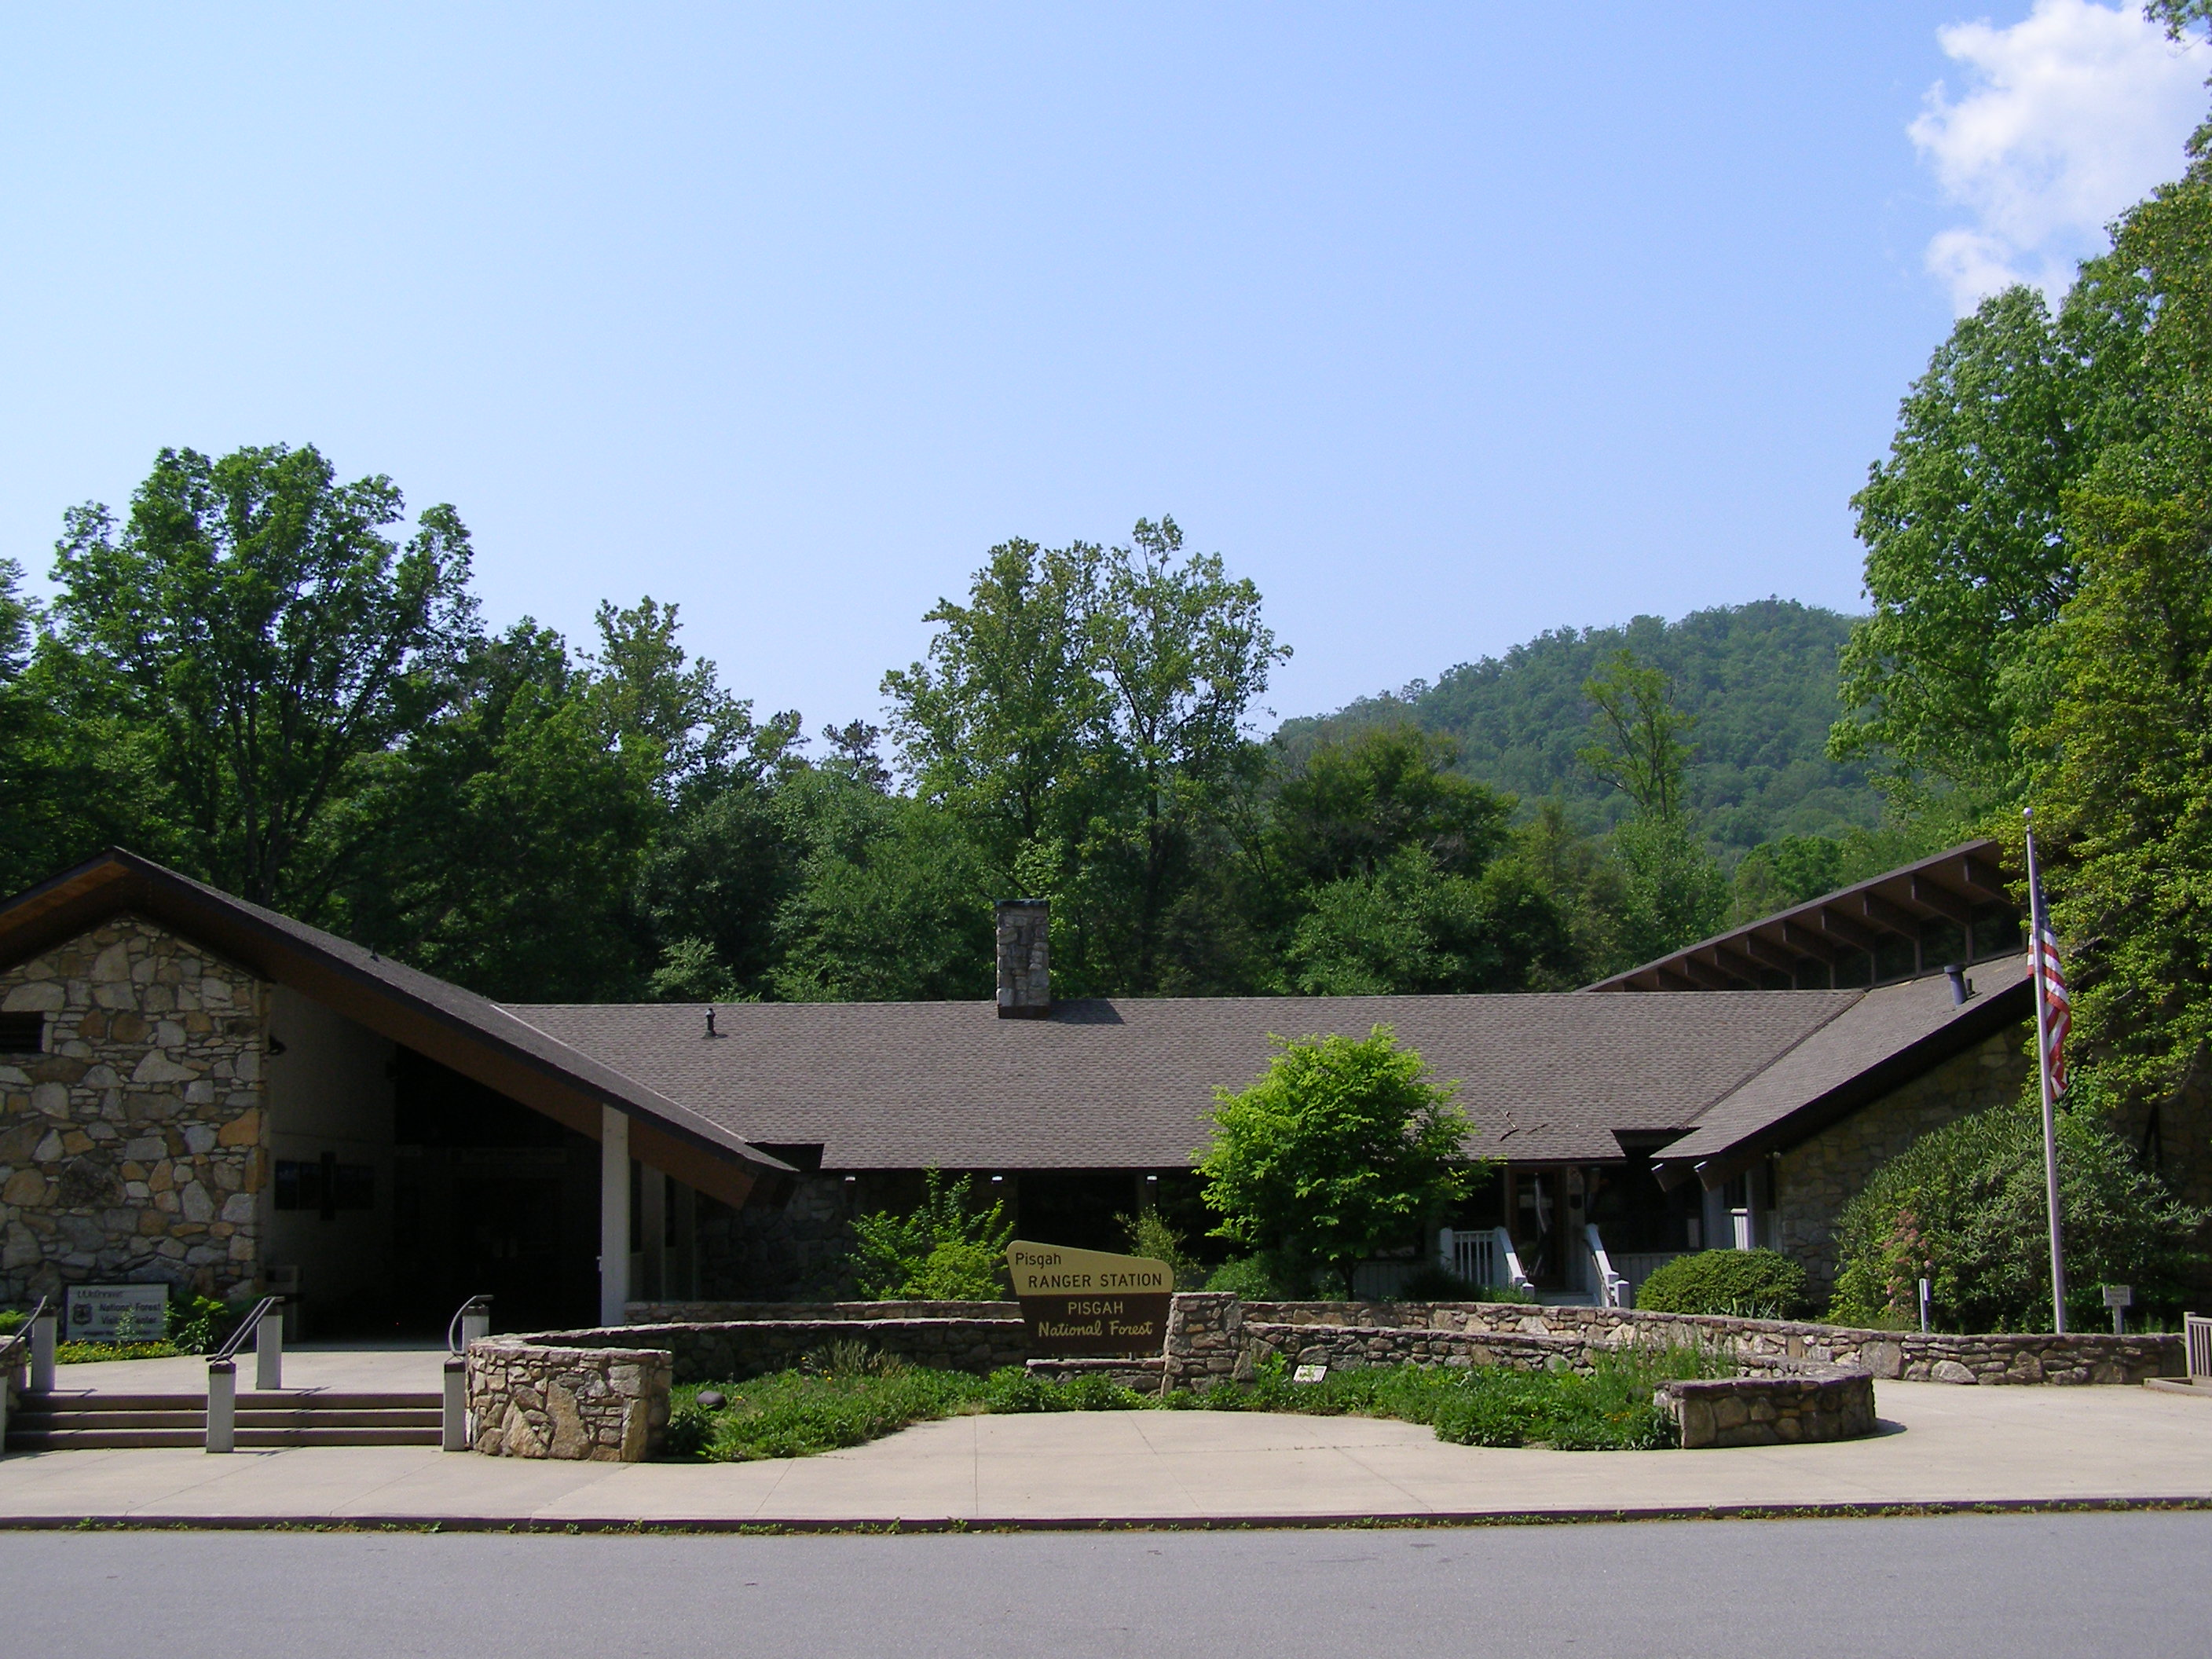 View of the front of the Pisgah Ranger District.